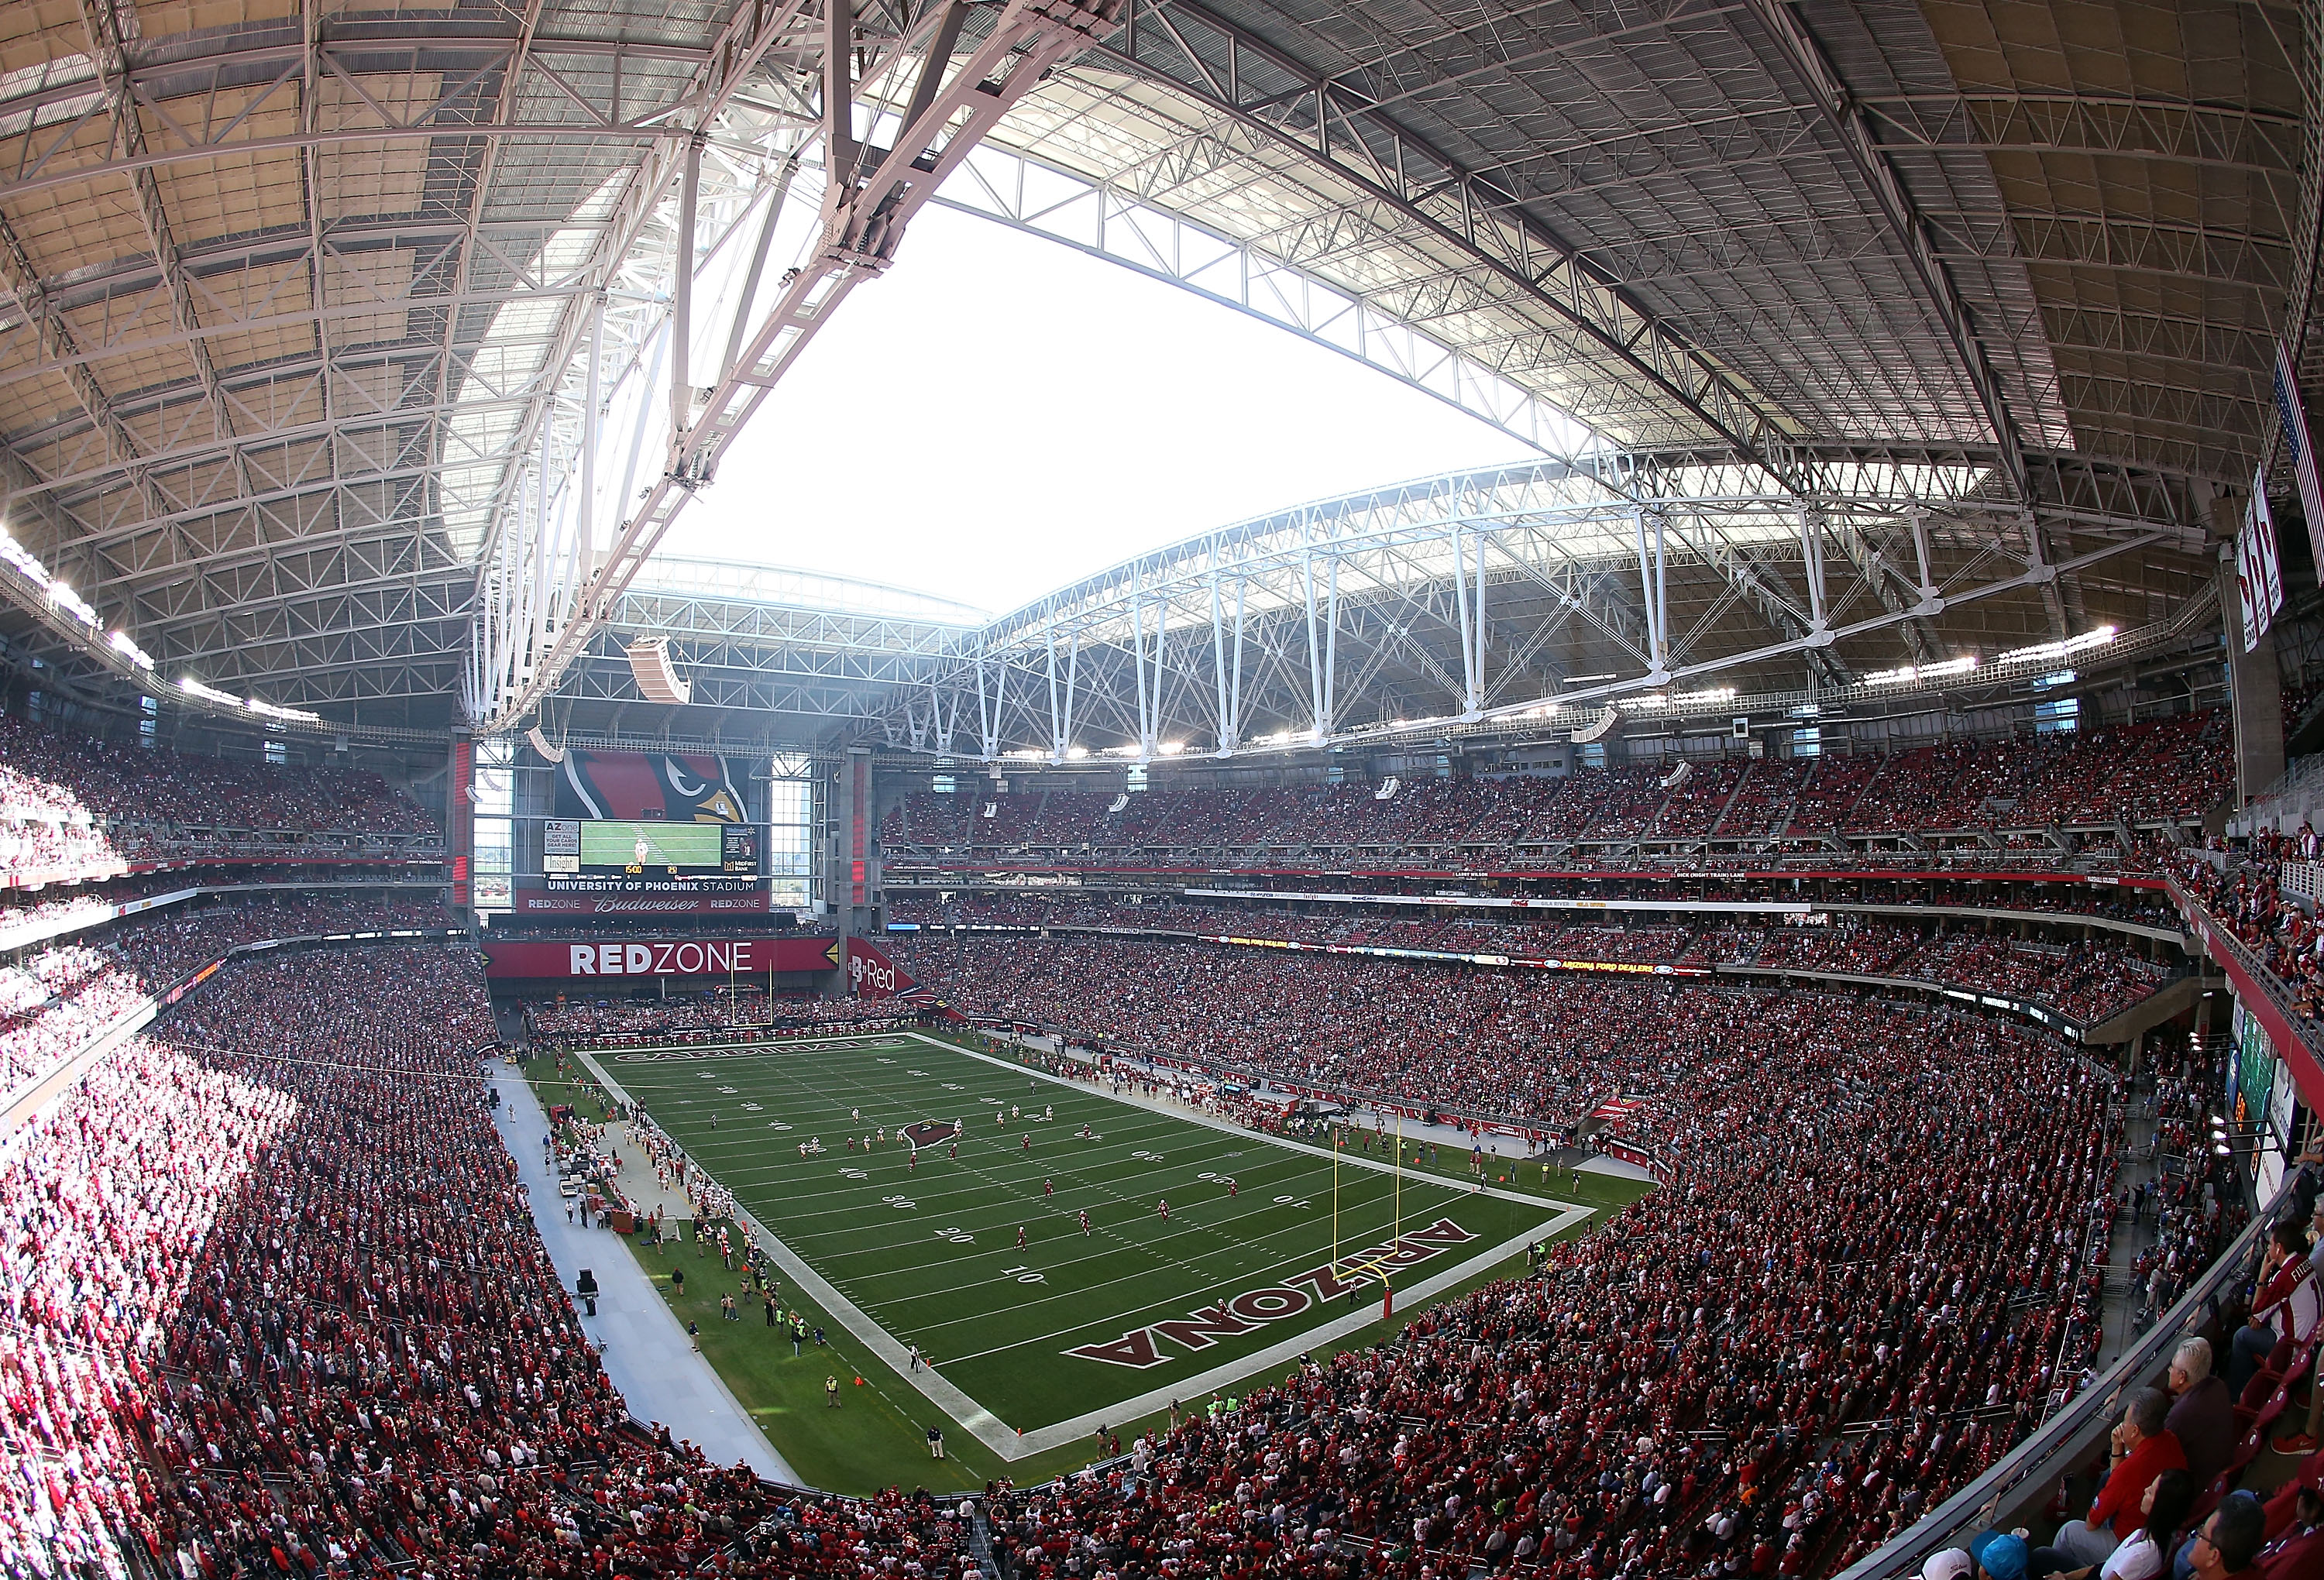 The University of Phoenix Stadium in Glendale, Ariz. has both a retractable roof and field for its multipurpose use. It's home to both the Arizona Cardinals and the college football Fiesta Bowl. True to its roots, the stadium's exterior is designed to represent a barrel cactus.